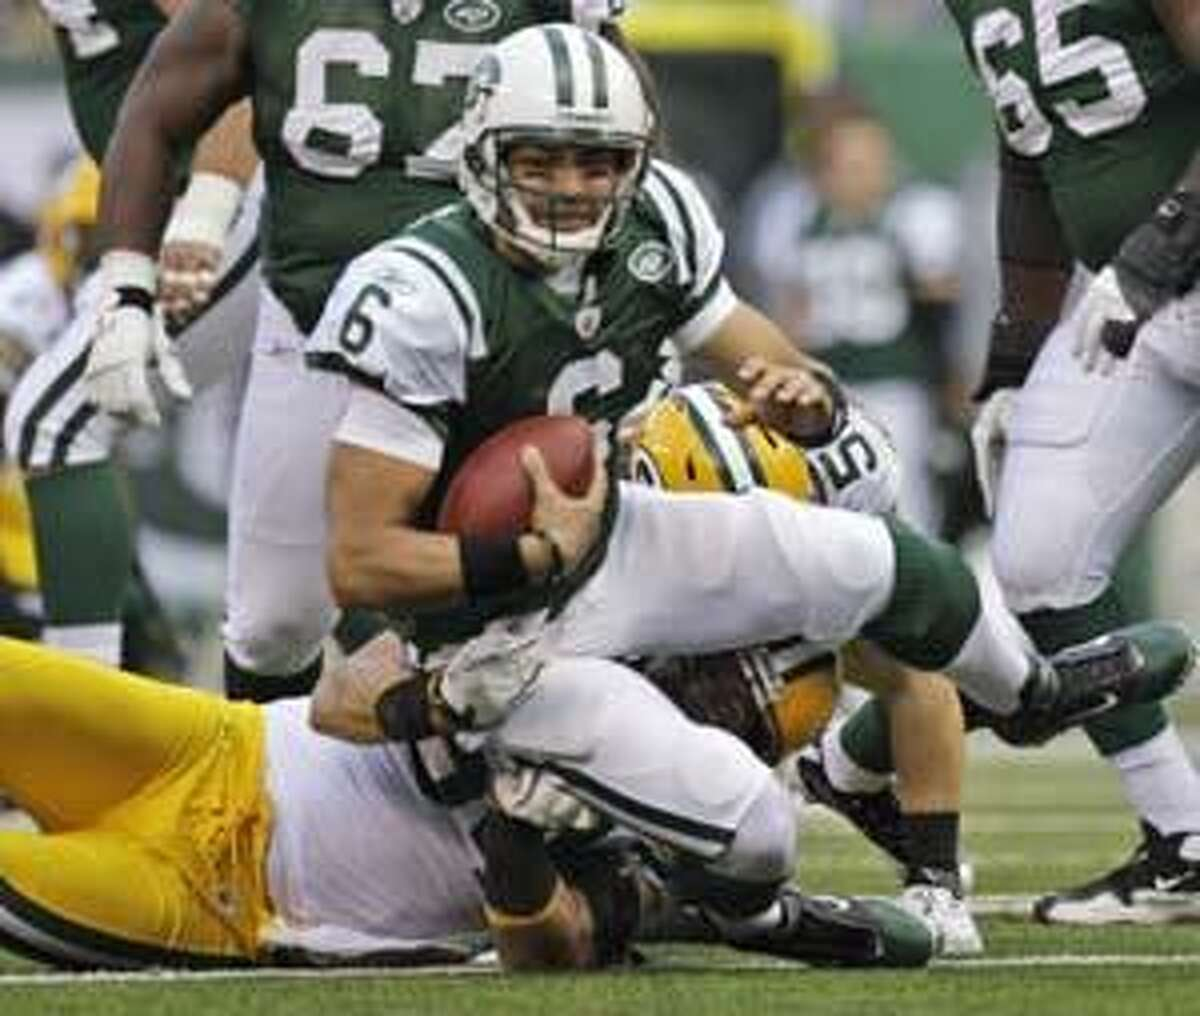 New York Jets quarterback Mark Sanchez (6) is sacked by Green Bay Packers linebacker Brandon Chillar (54) during the first quarter of an NFL football game at New Meadowlands Stadium on Sunday, Oct. 31, 2010, in East Rutherford, N.J. (AP Photo/Kathy Willens)